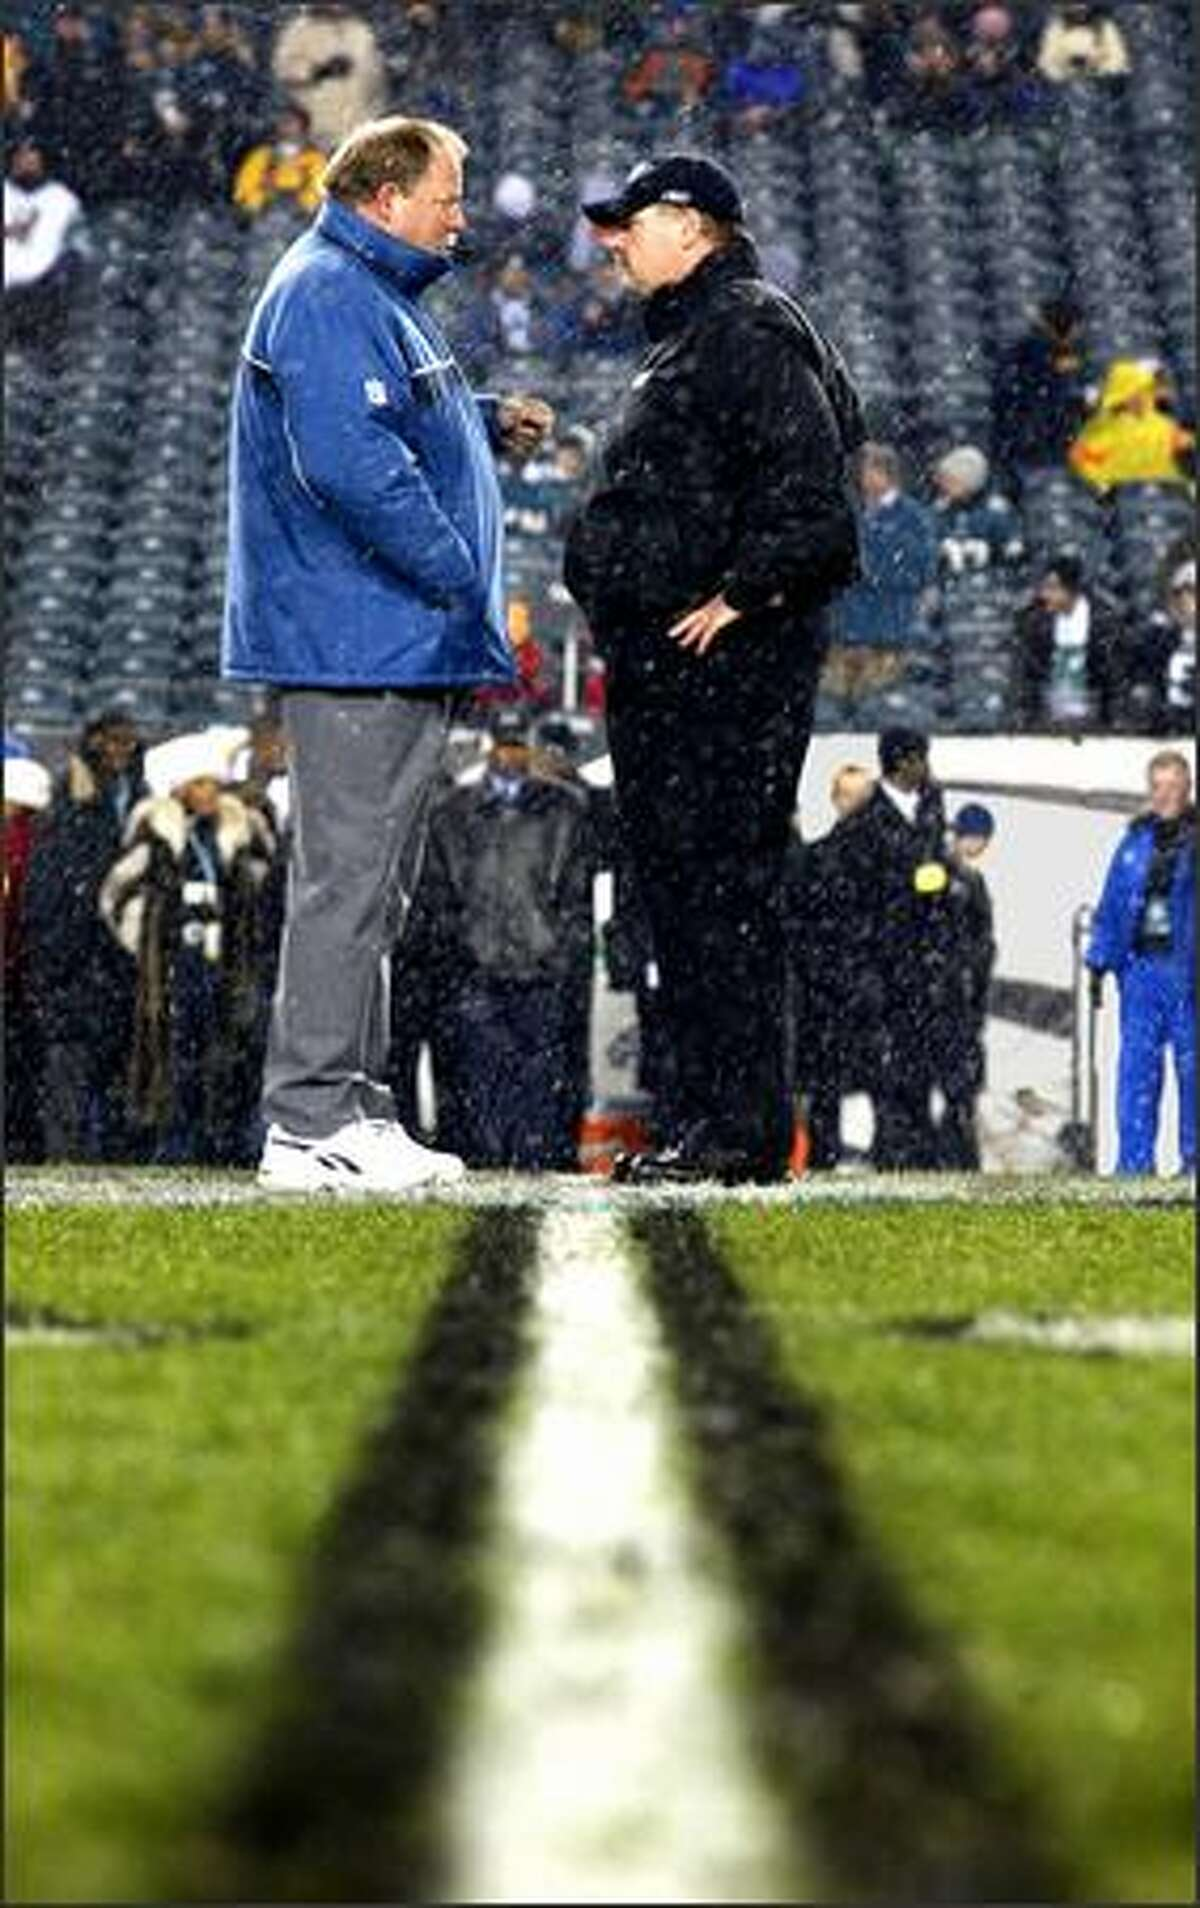 Mike Holmgren and his former assistant Andy Reid, right, now Eagles head coach, meet before the game Monday in Philadelphia. The Seahawks won 42-0.